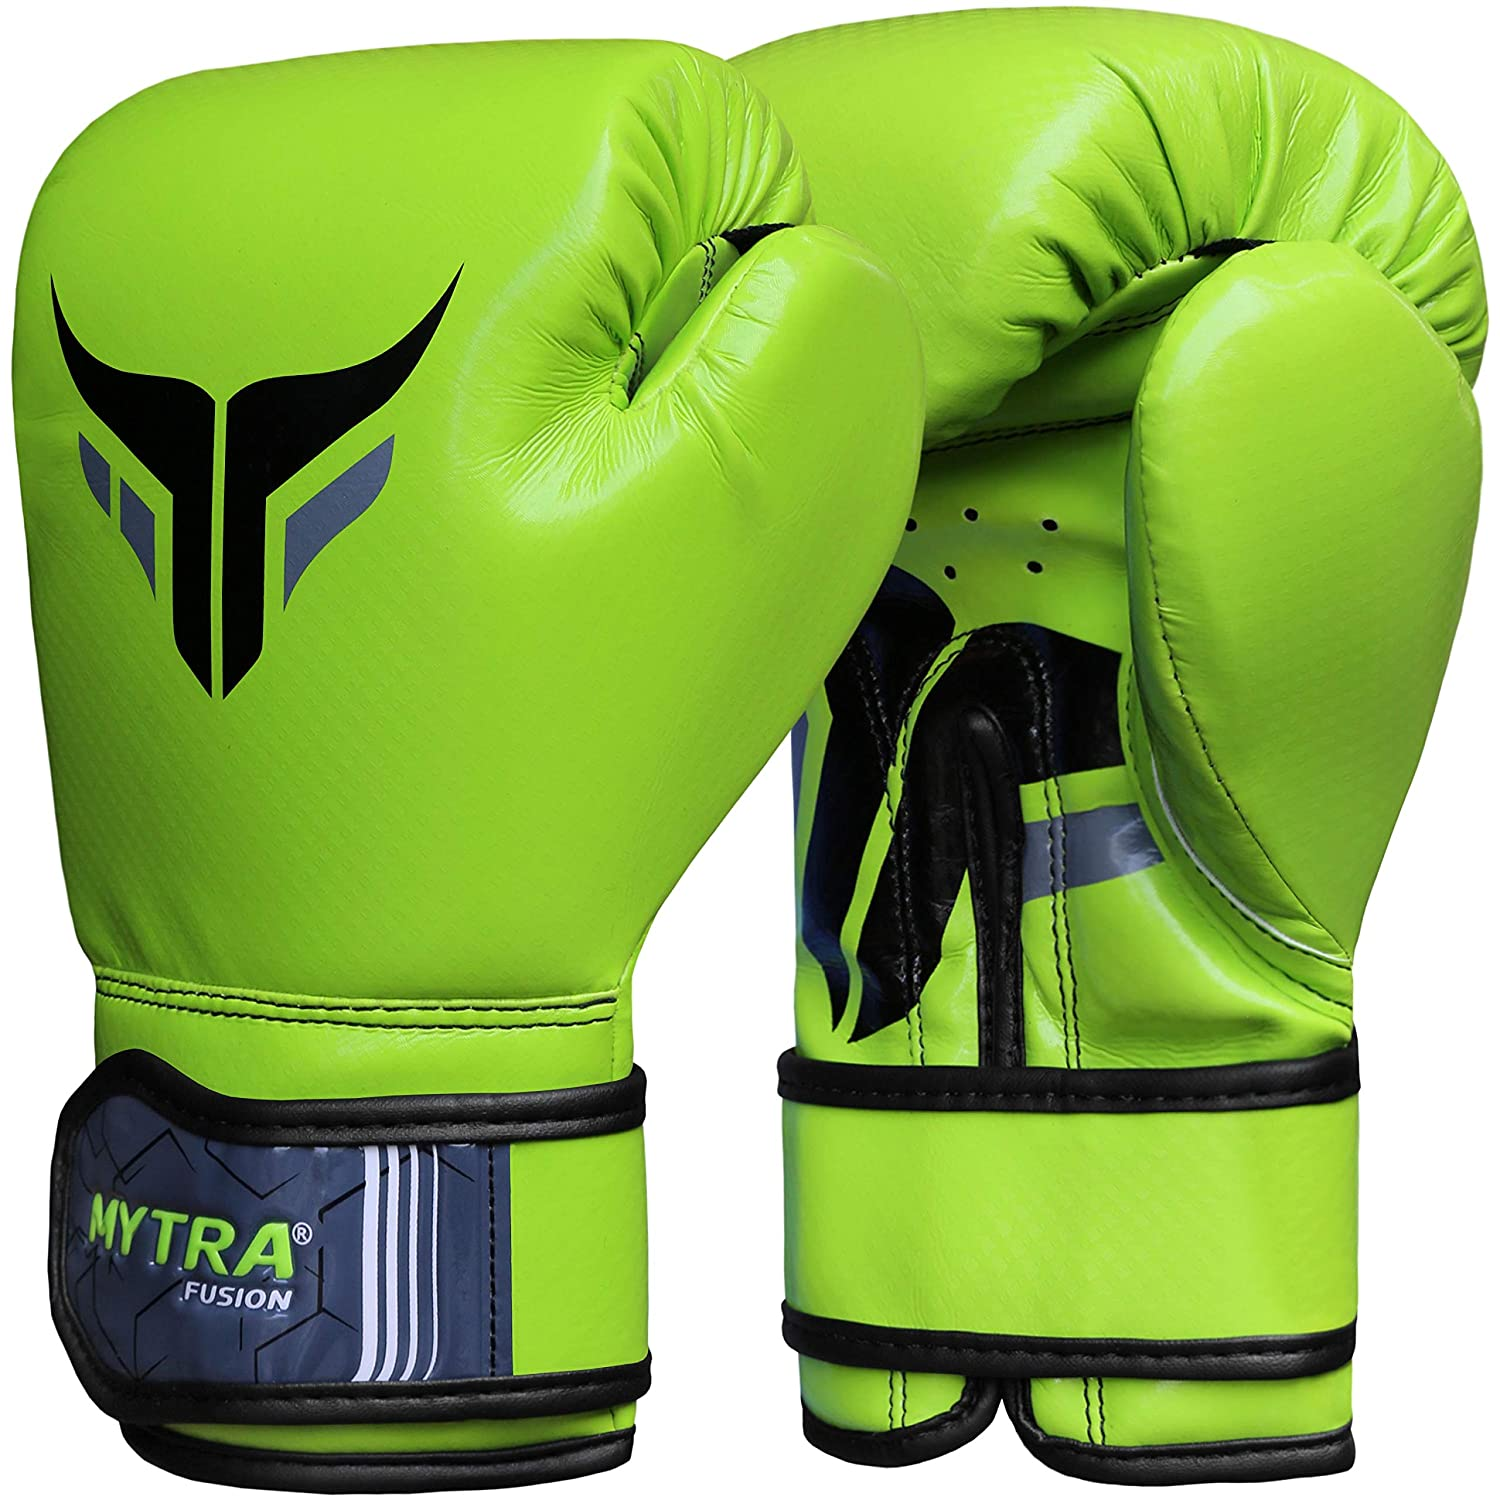 Mytra Fusion Kids Boxing Gloves Carbon AL2